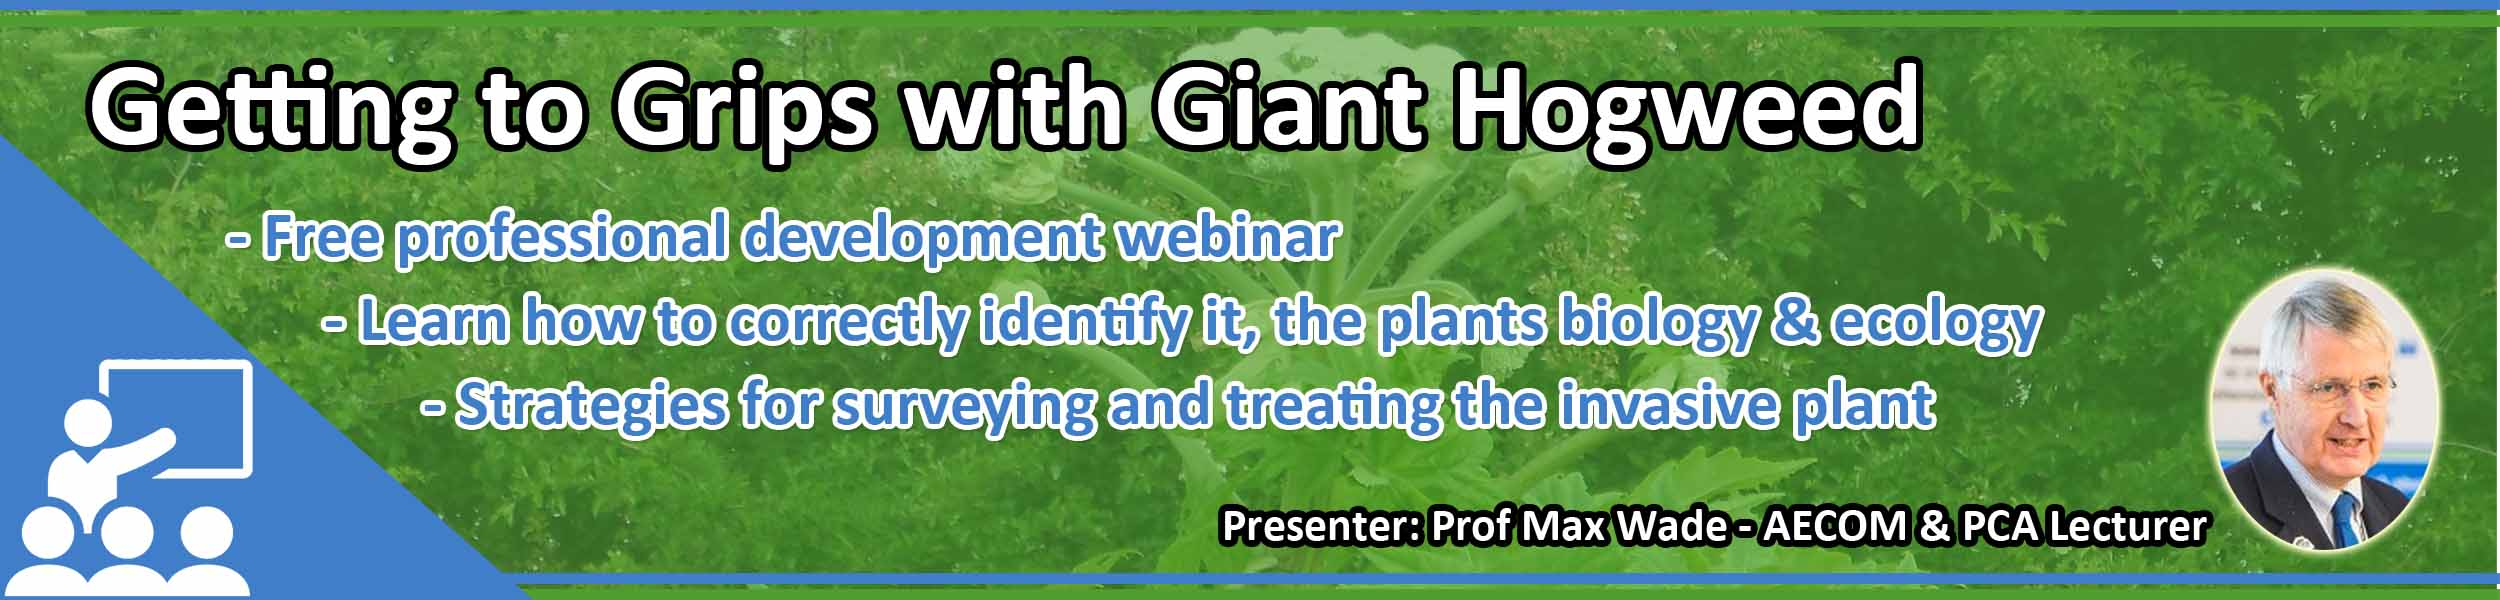 Webinar - Getting to Grips with Giant Hogweed